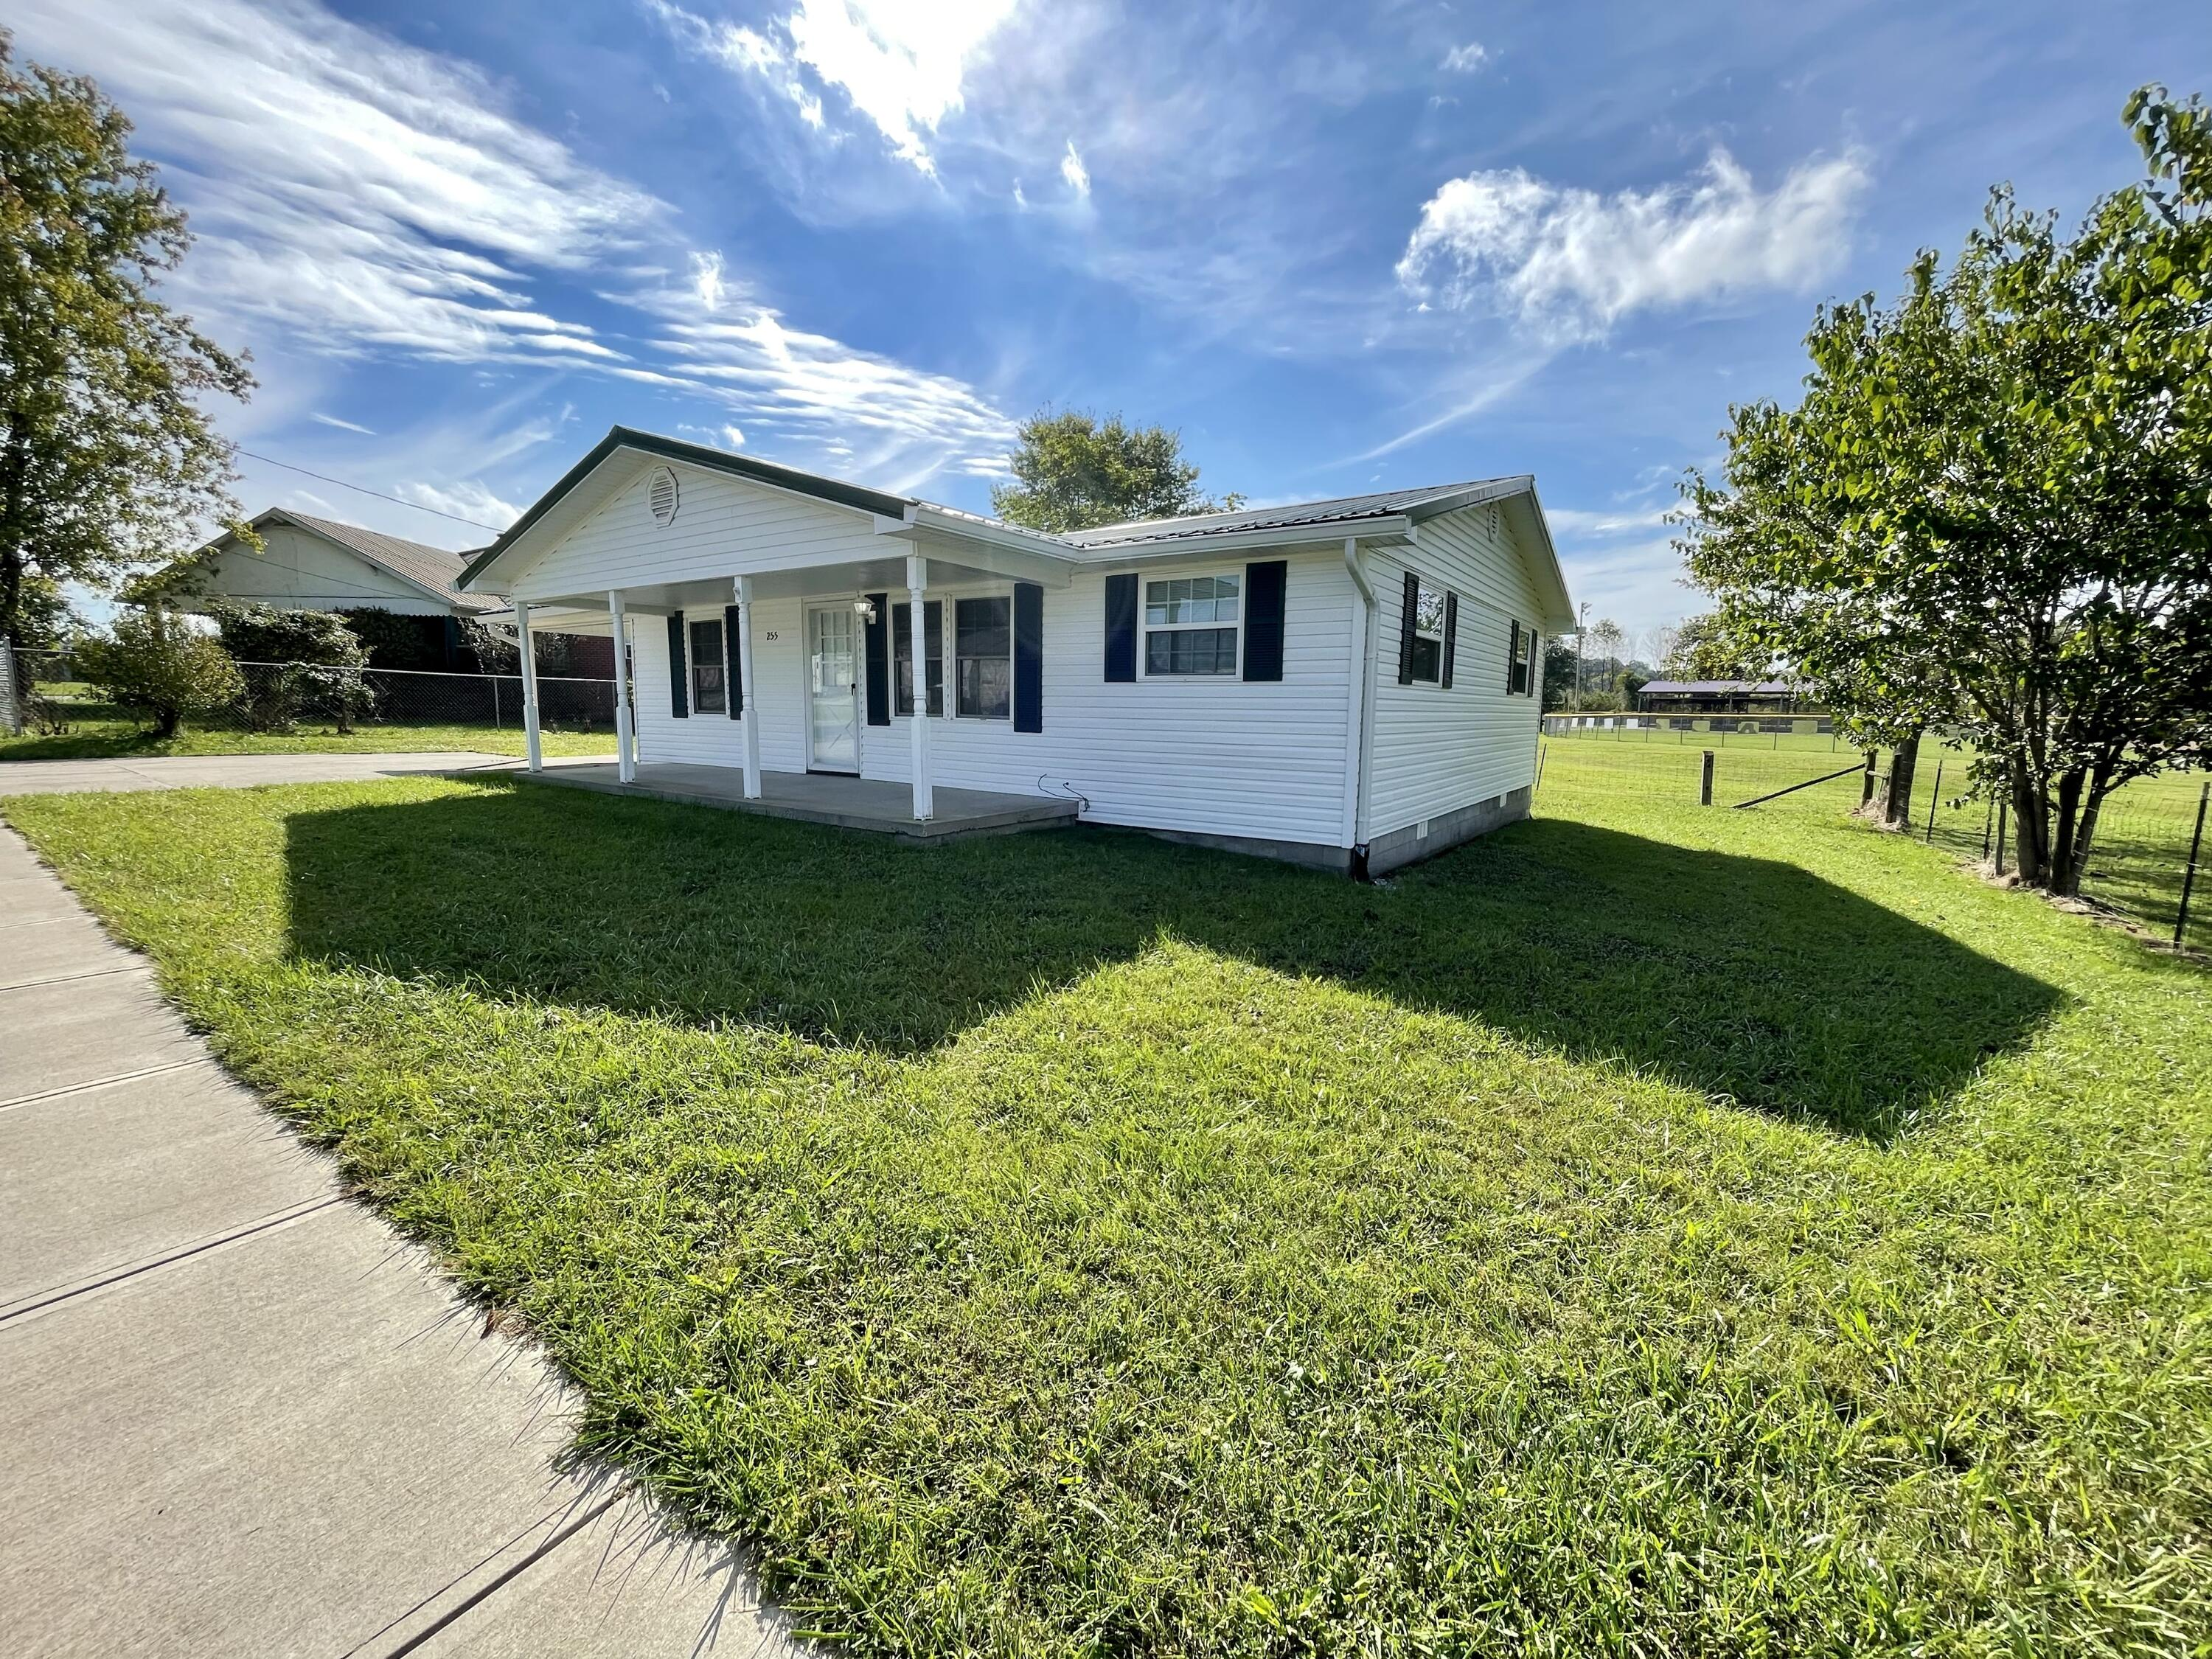 255 W Highway 635, Science Hill, KY 42553